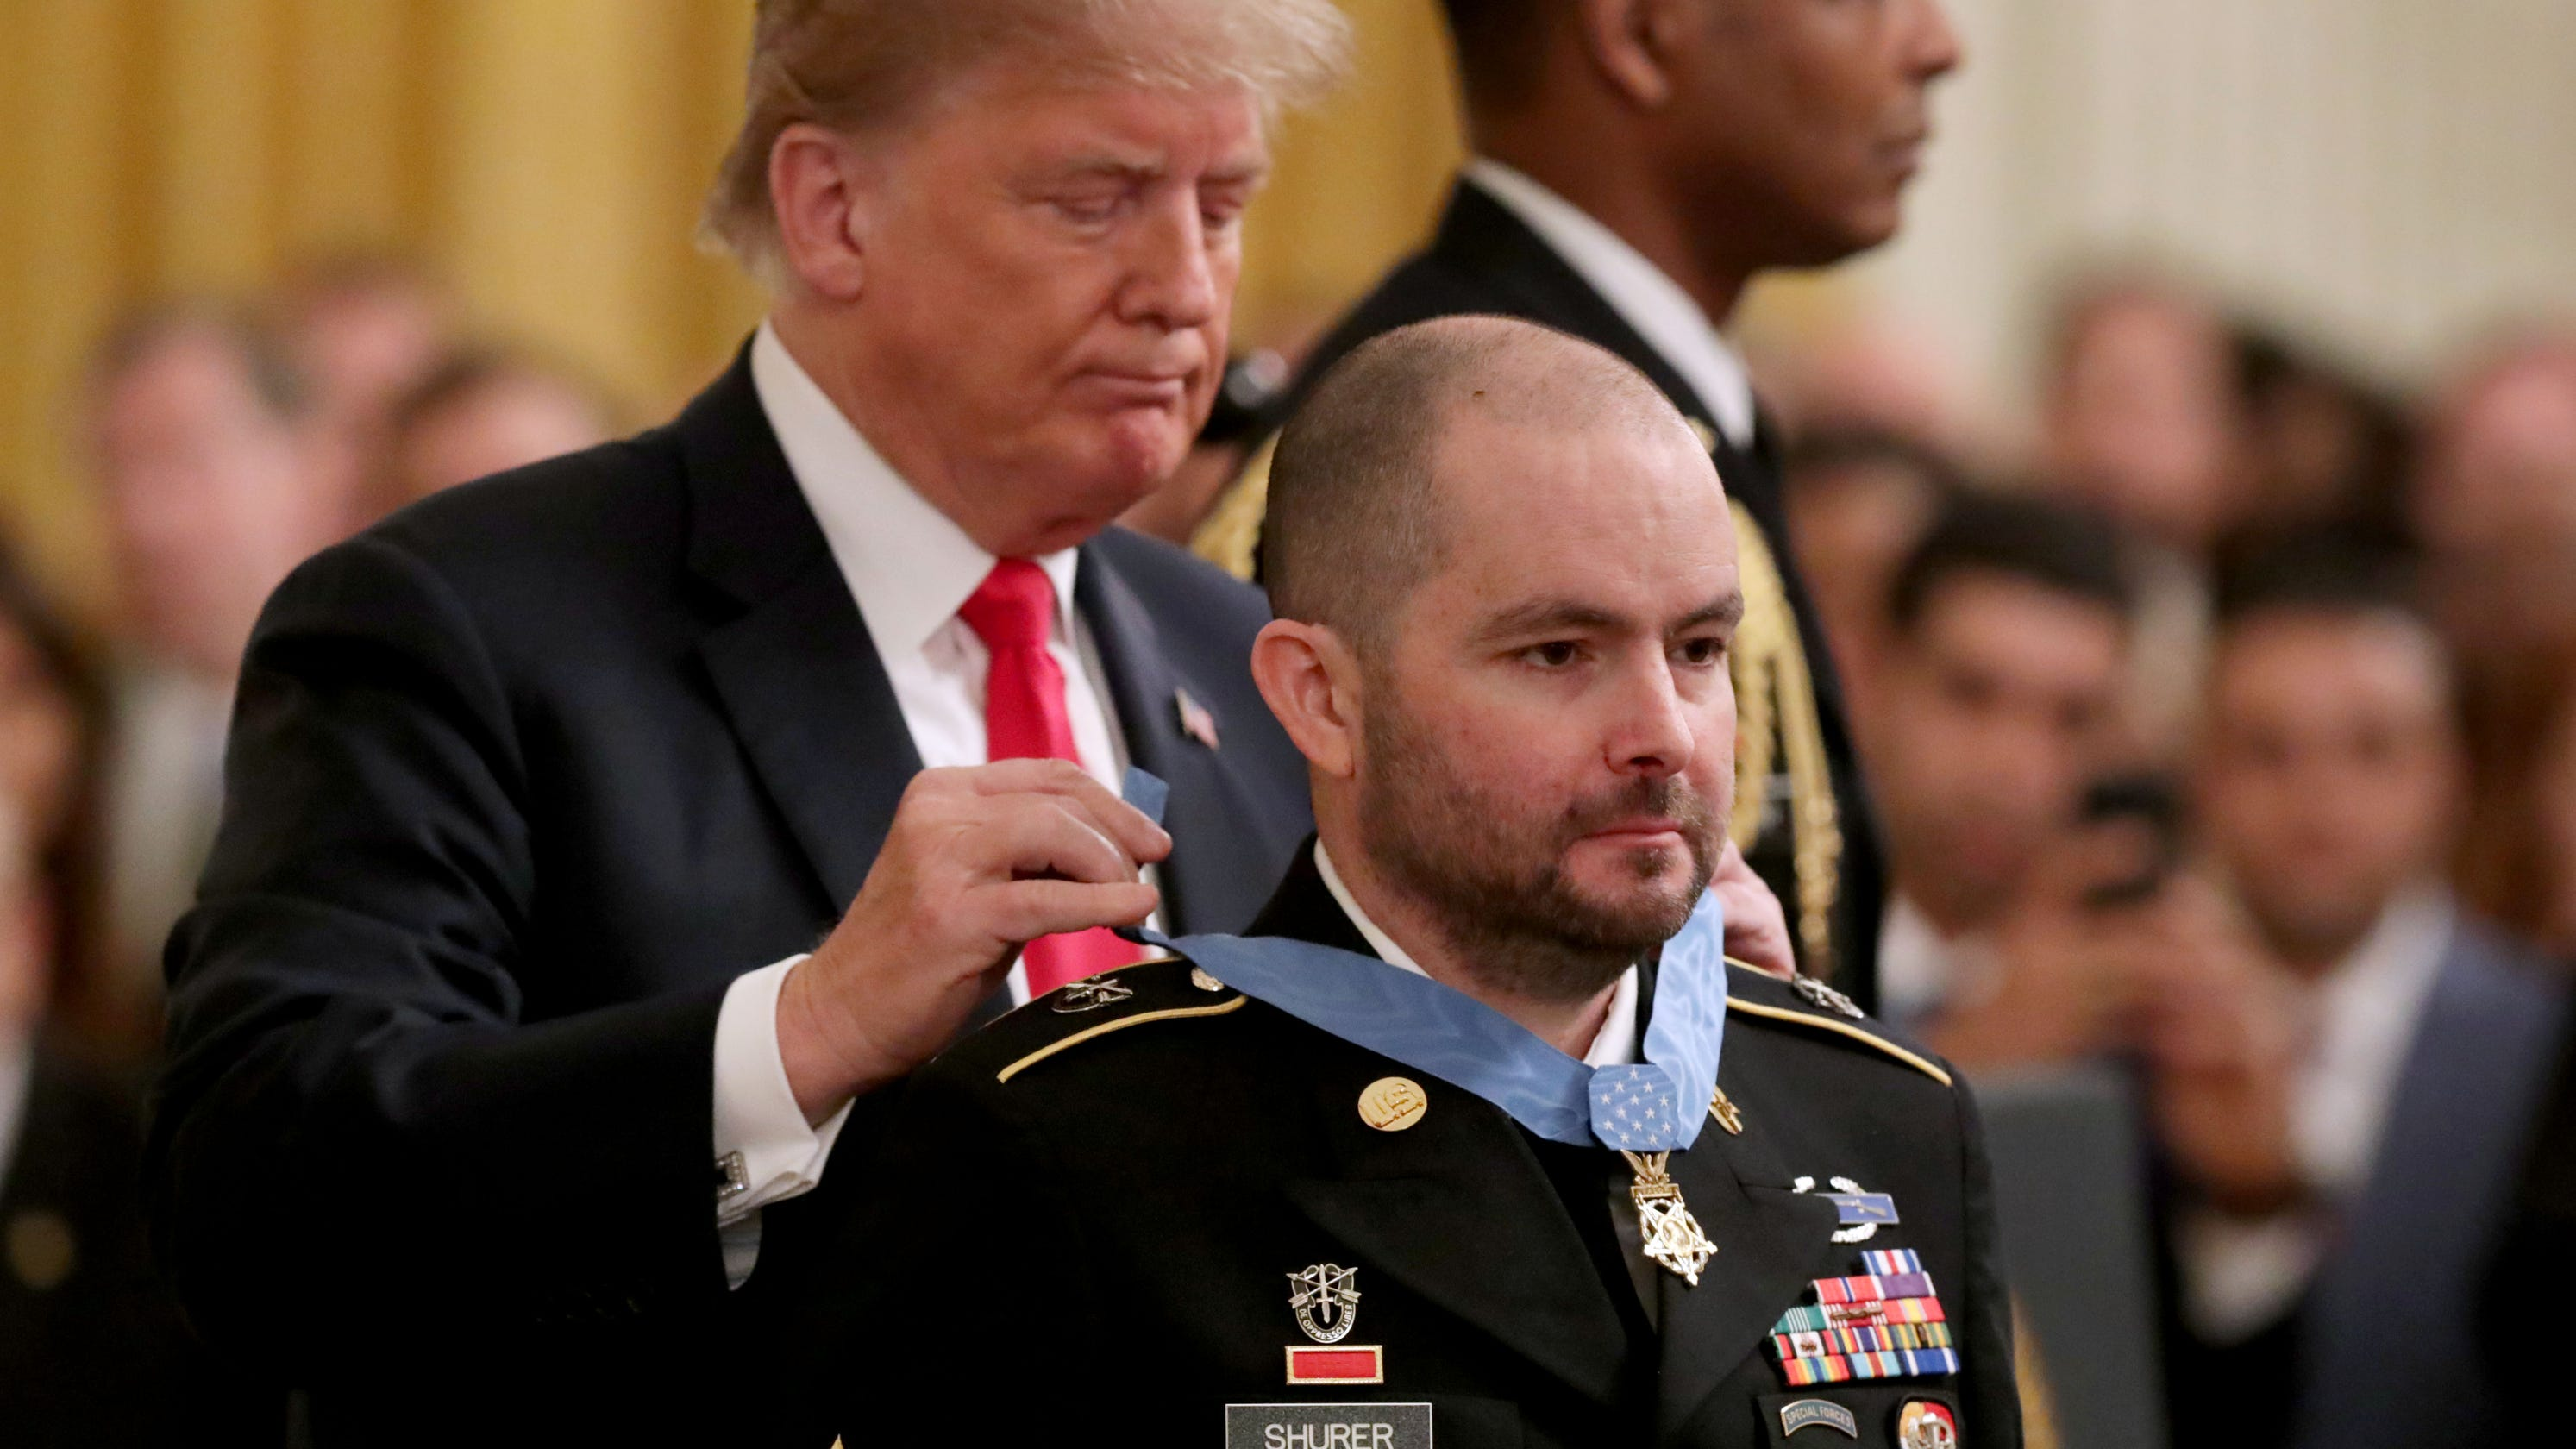 President Trump presents Medal of Honor to former Army medic